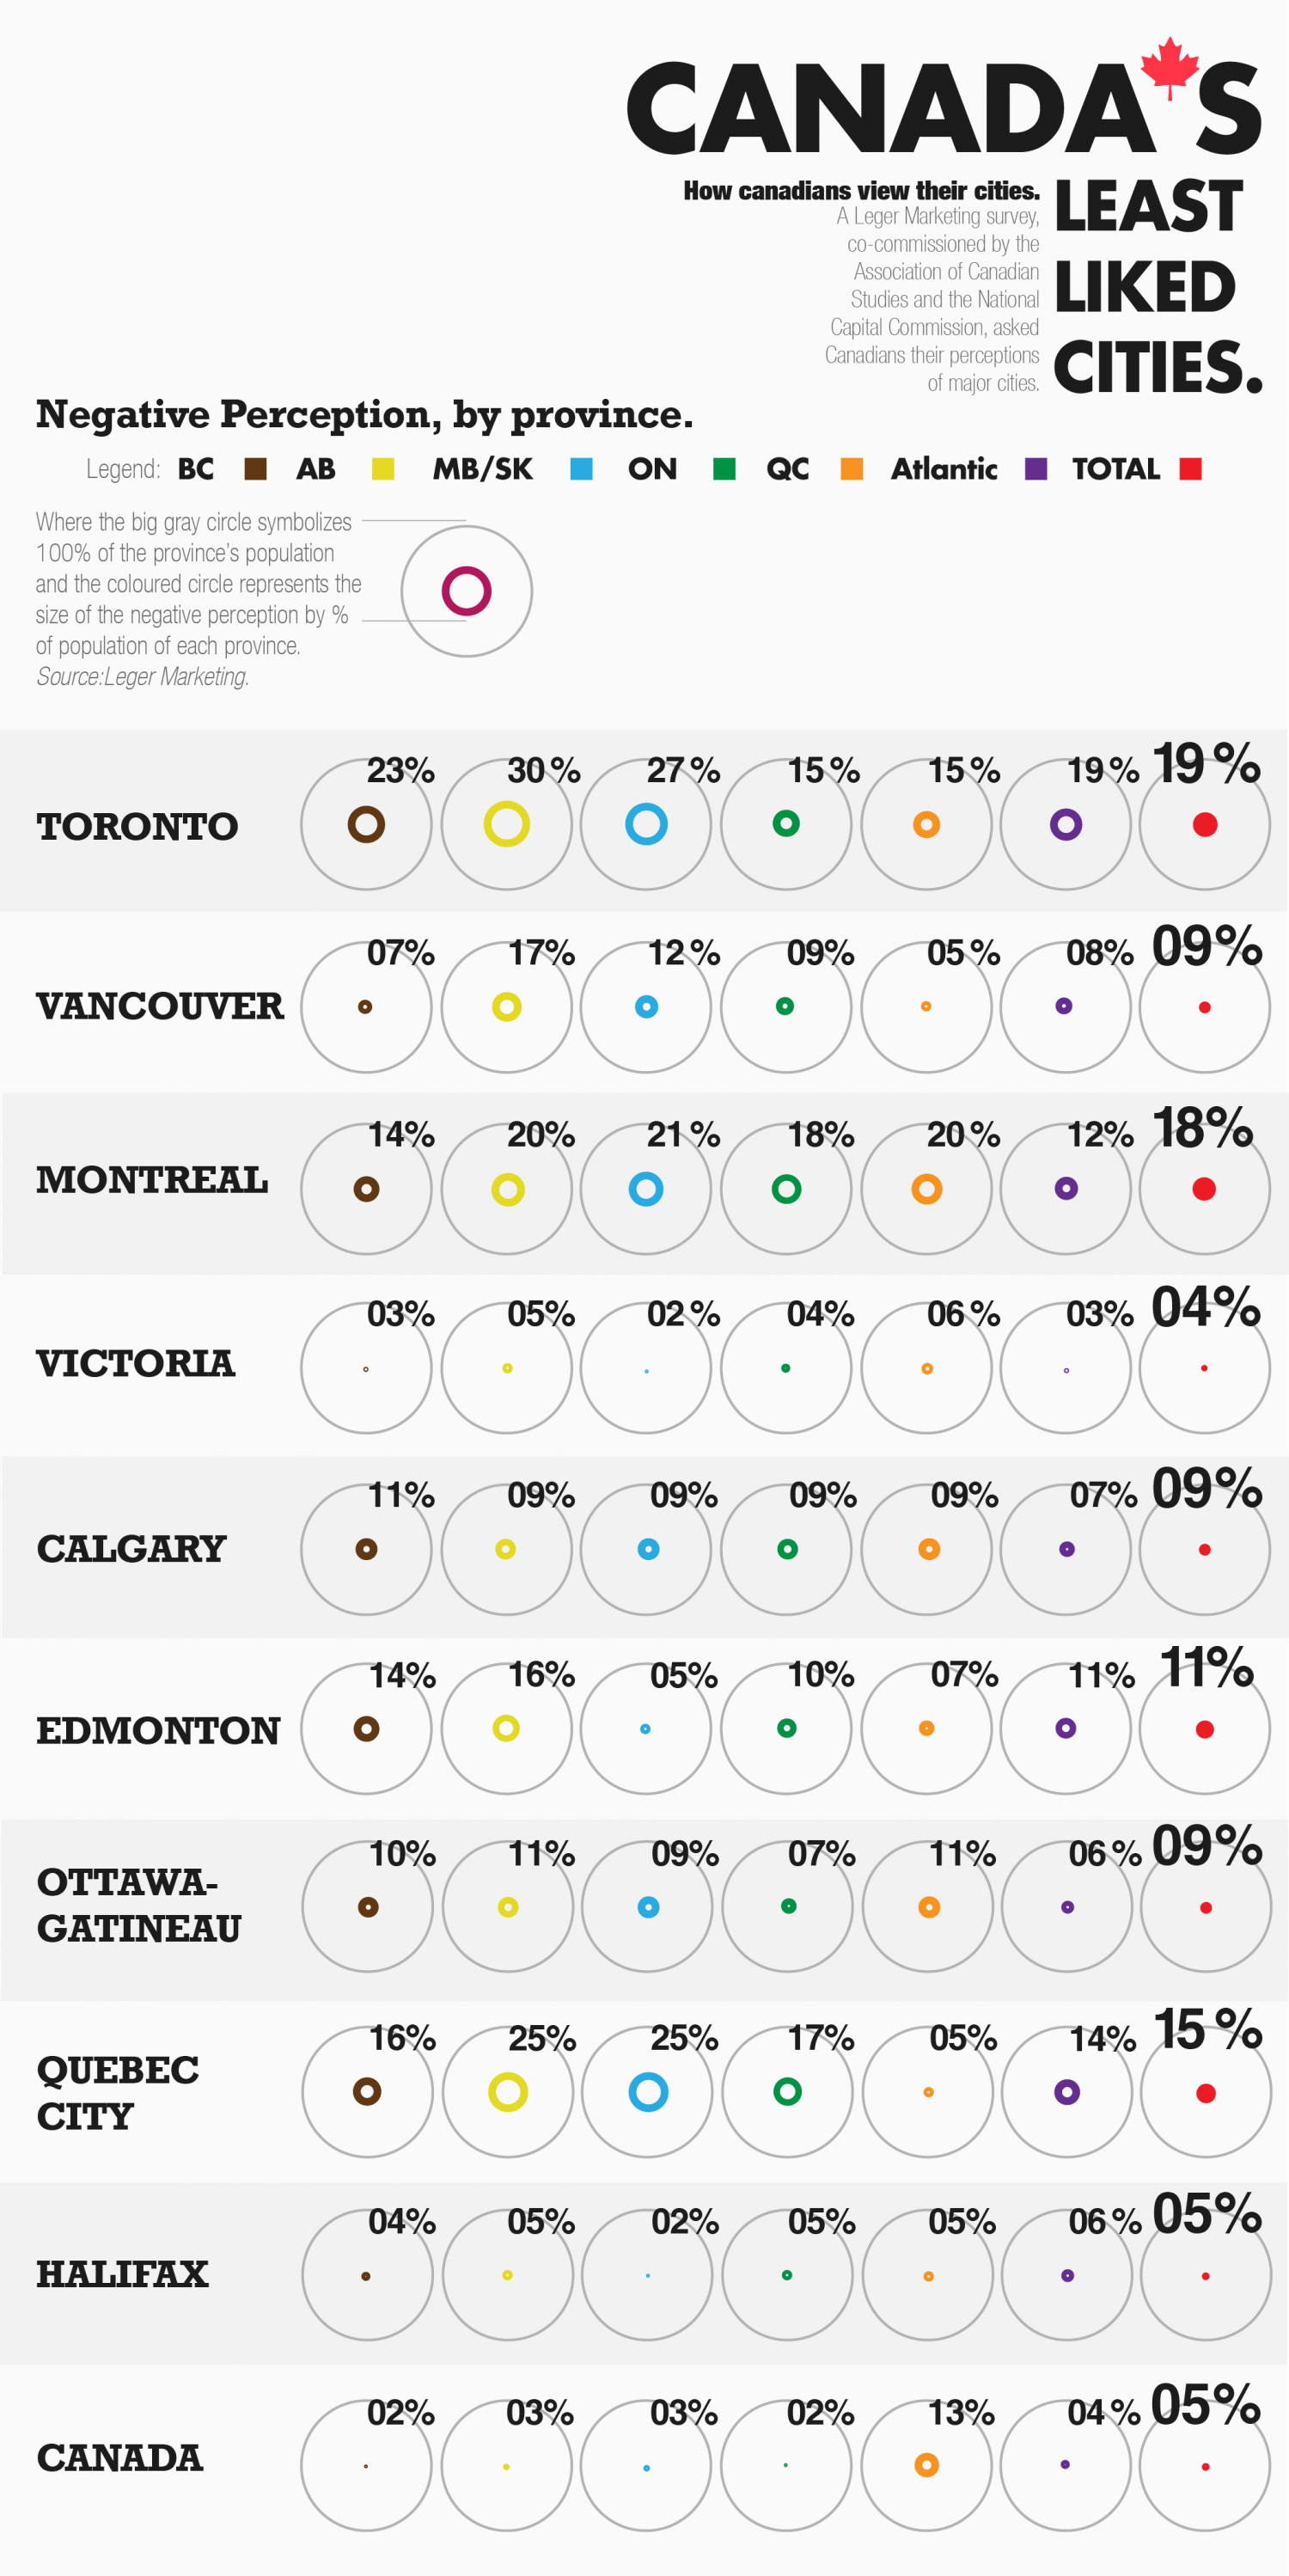 Canada's least liked cities Infographic